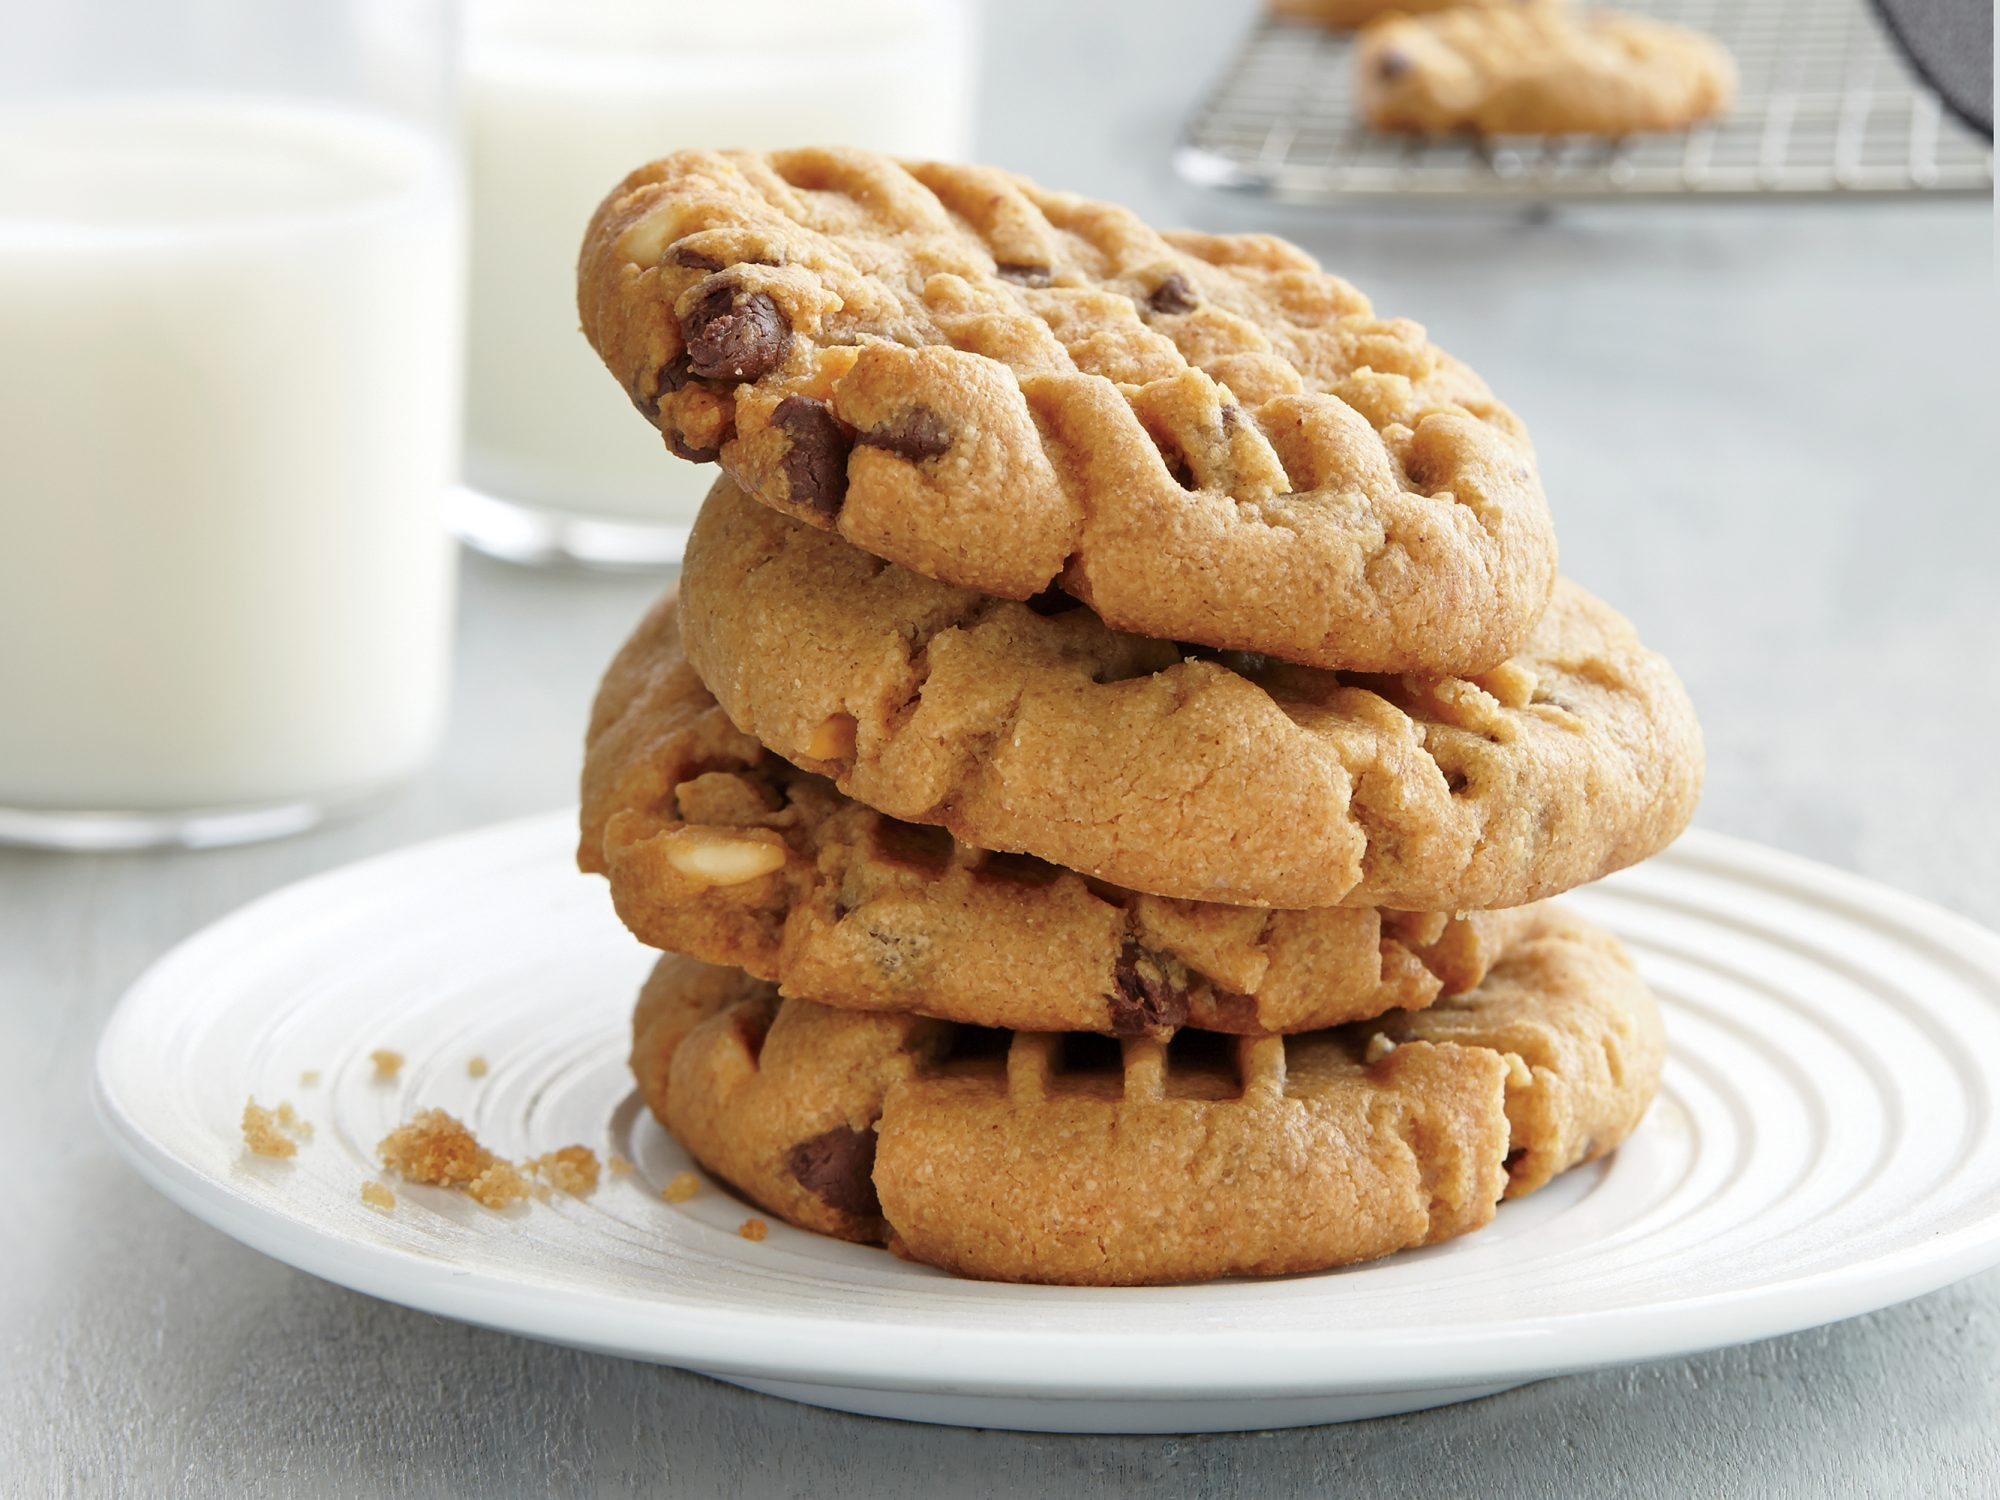 Gluten Free Peanut Butter Chocolate Chip Cookies Recipe Myrecipes